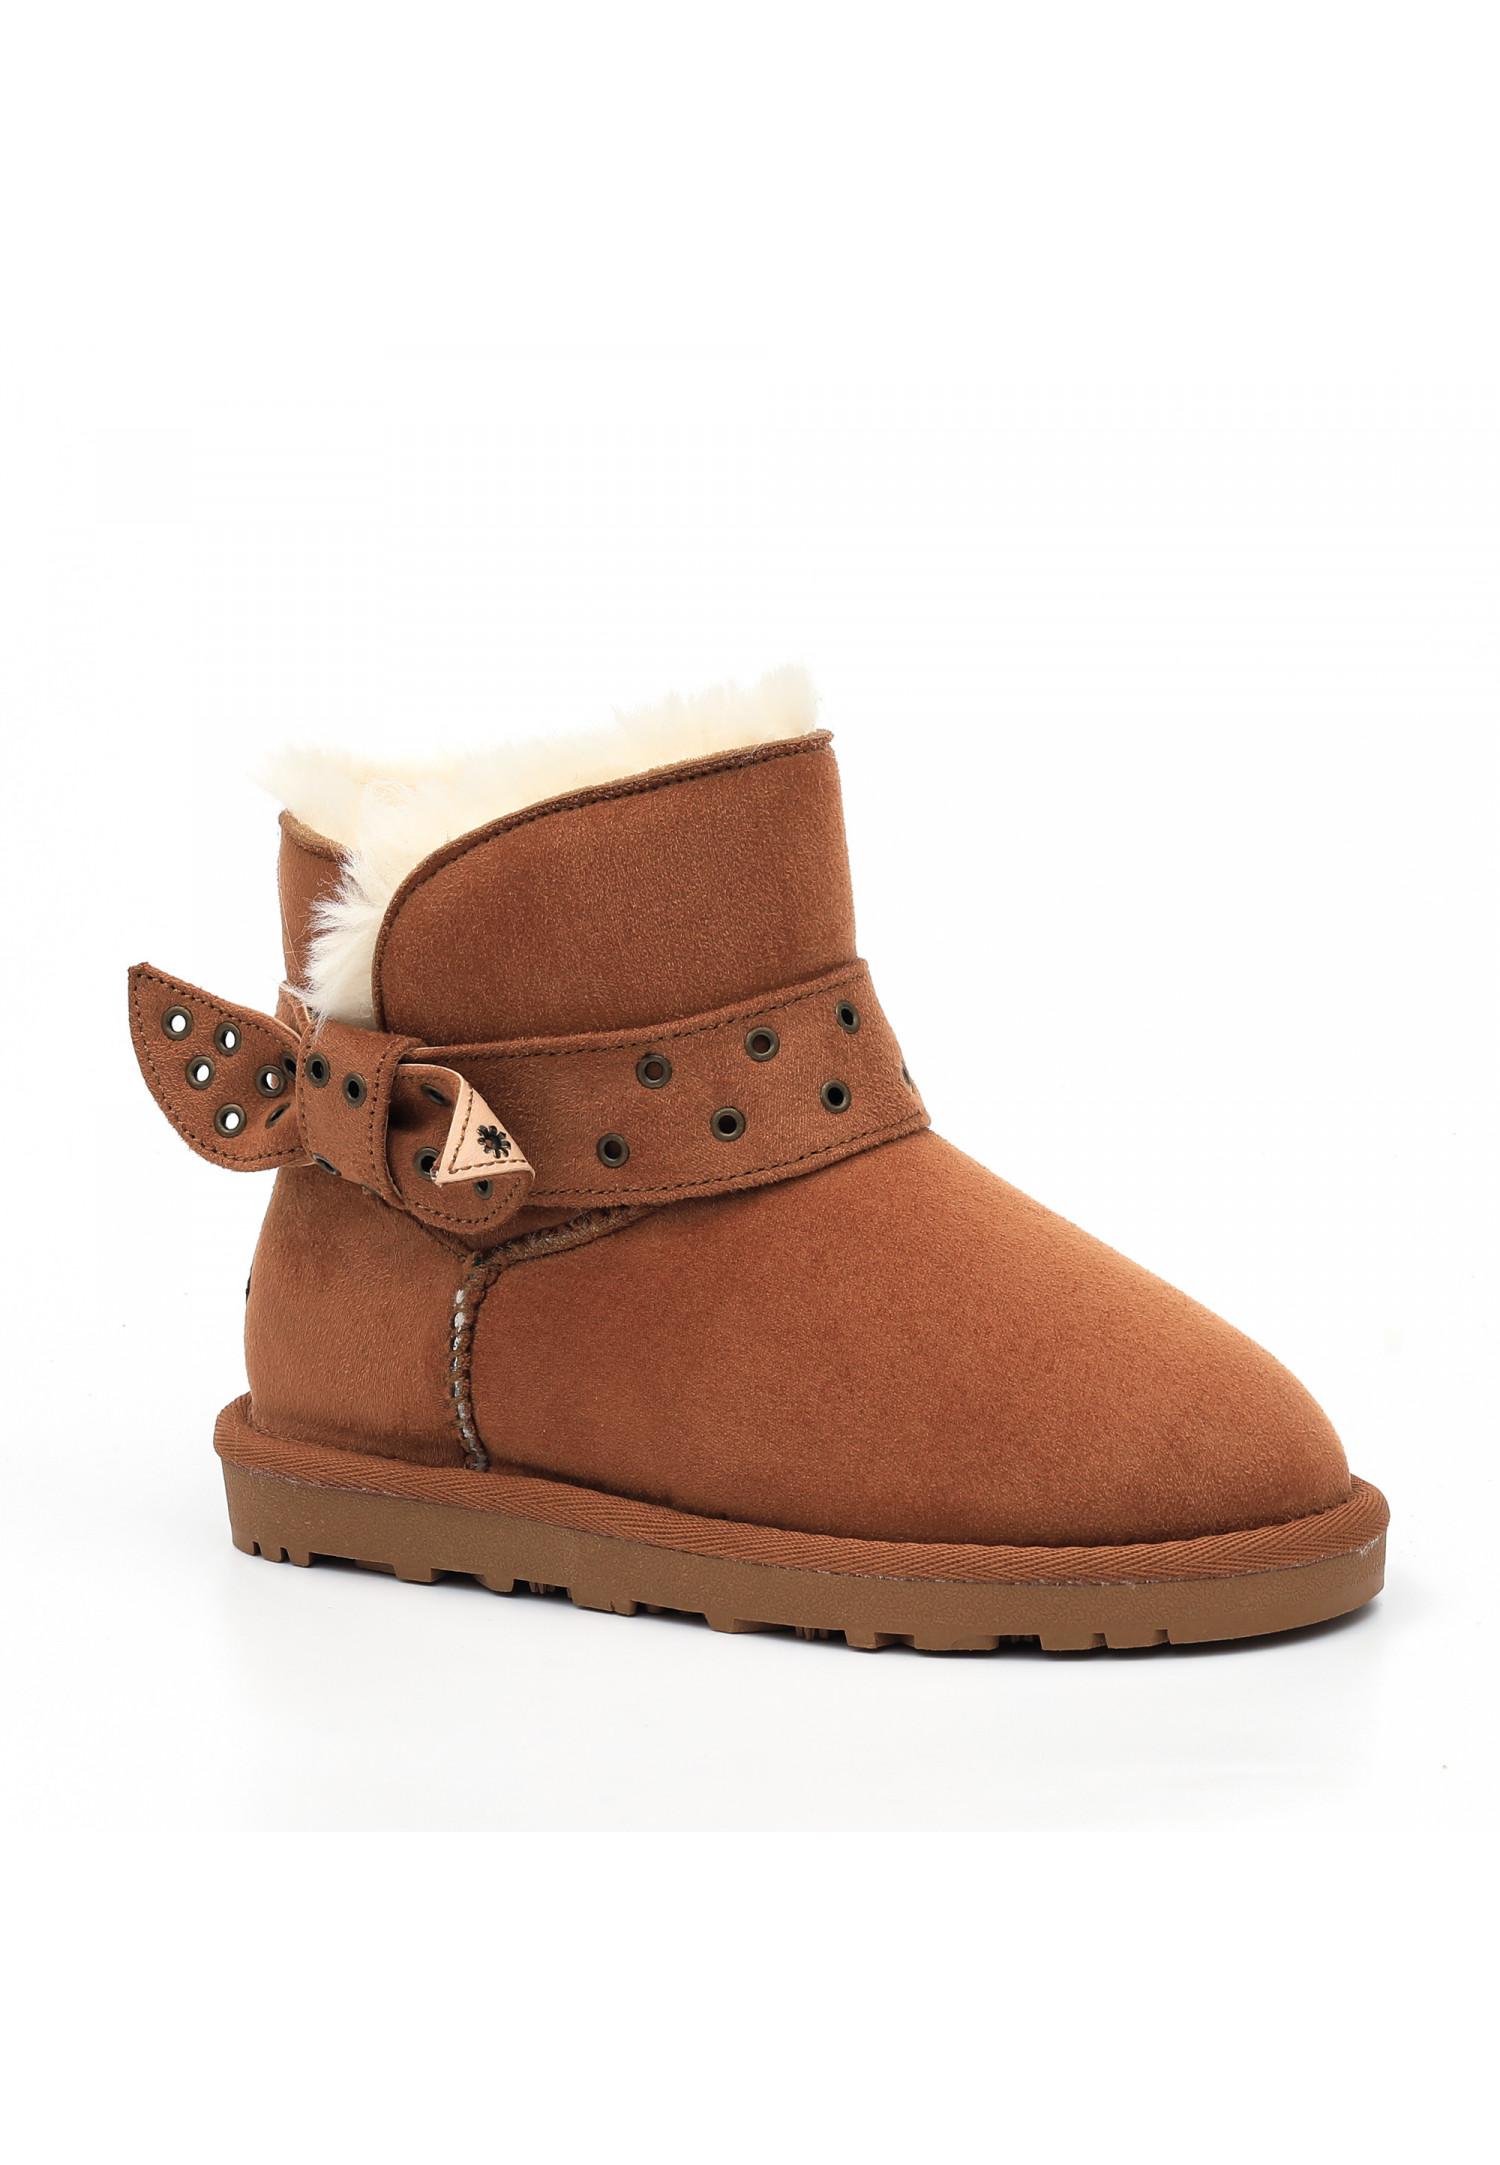 Bottines Enfants Erikana